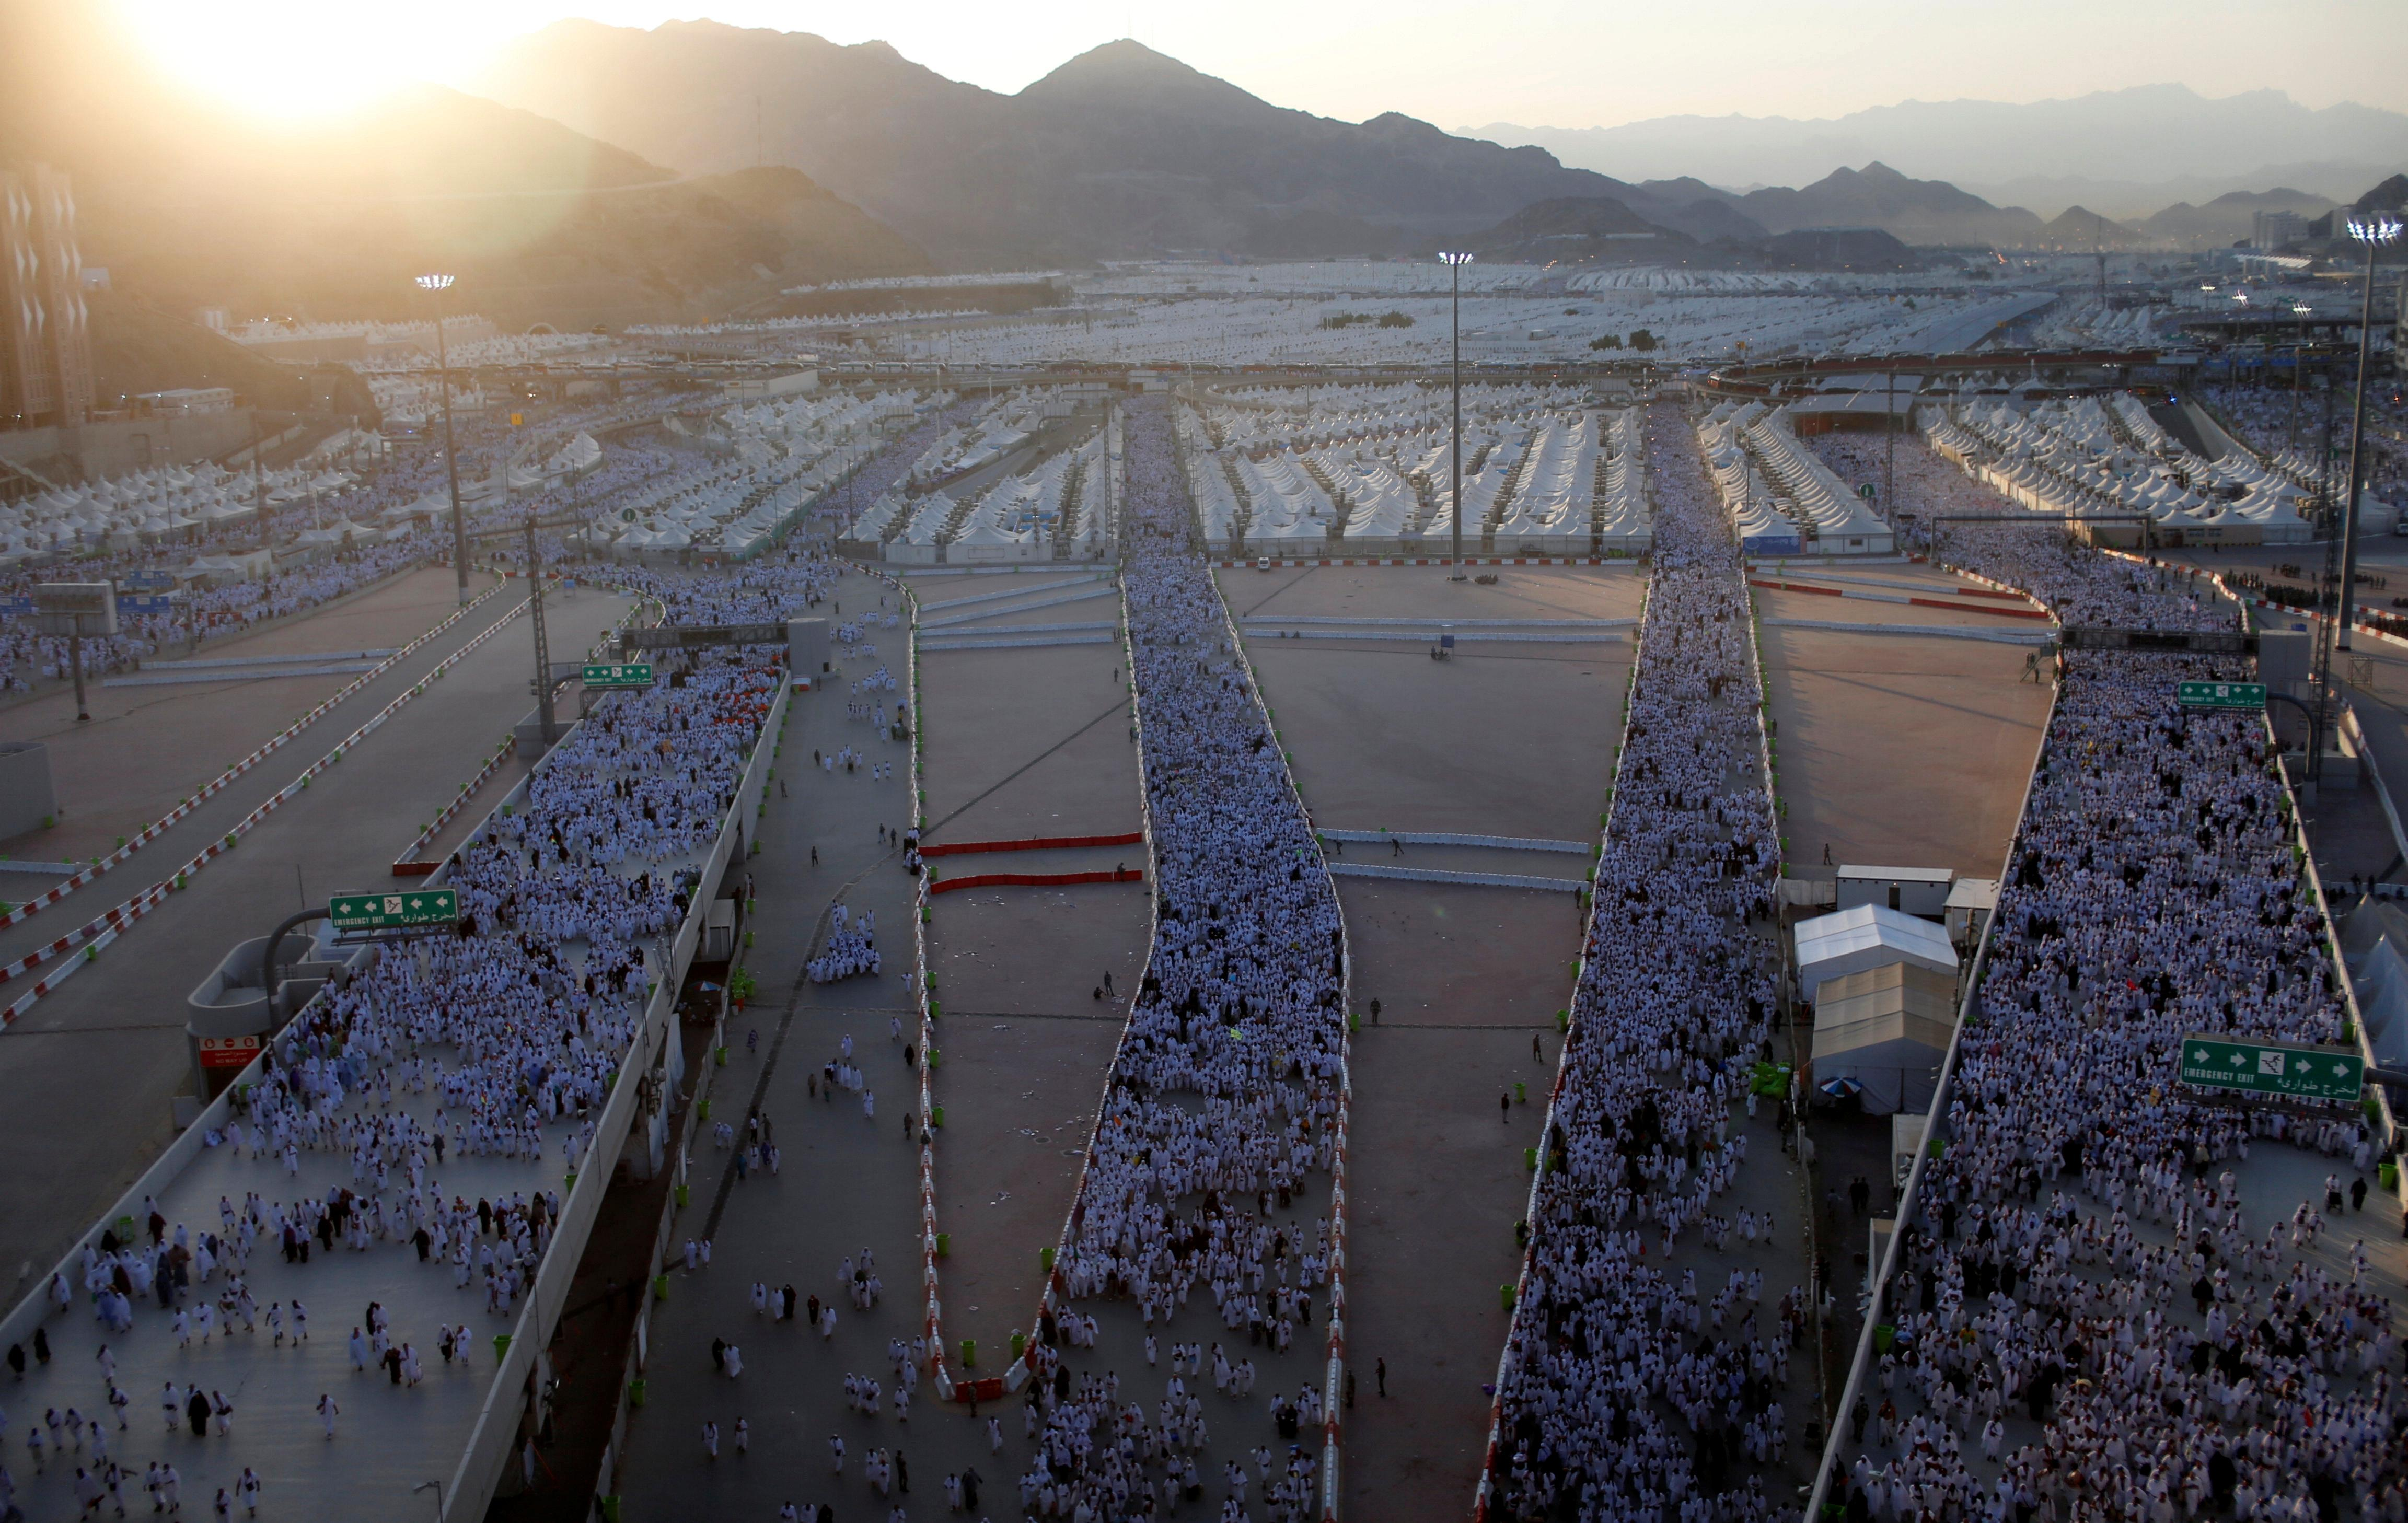 Muslim pilgrims walk on roads as they head to cast stones at pillars symbolizing Satan during the annual hajj pilgrimage in Mina on the first day of Eid al-Adha, near the holy city of Mecca, Saudi Arabia Sept. 12, 2016. Photo: REUTERS/Ahmed Jadallah TPX IMAGES OF THE DAY